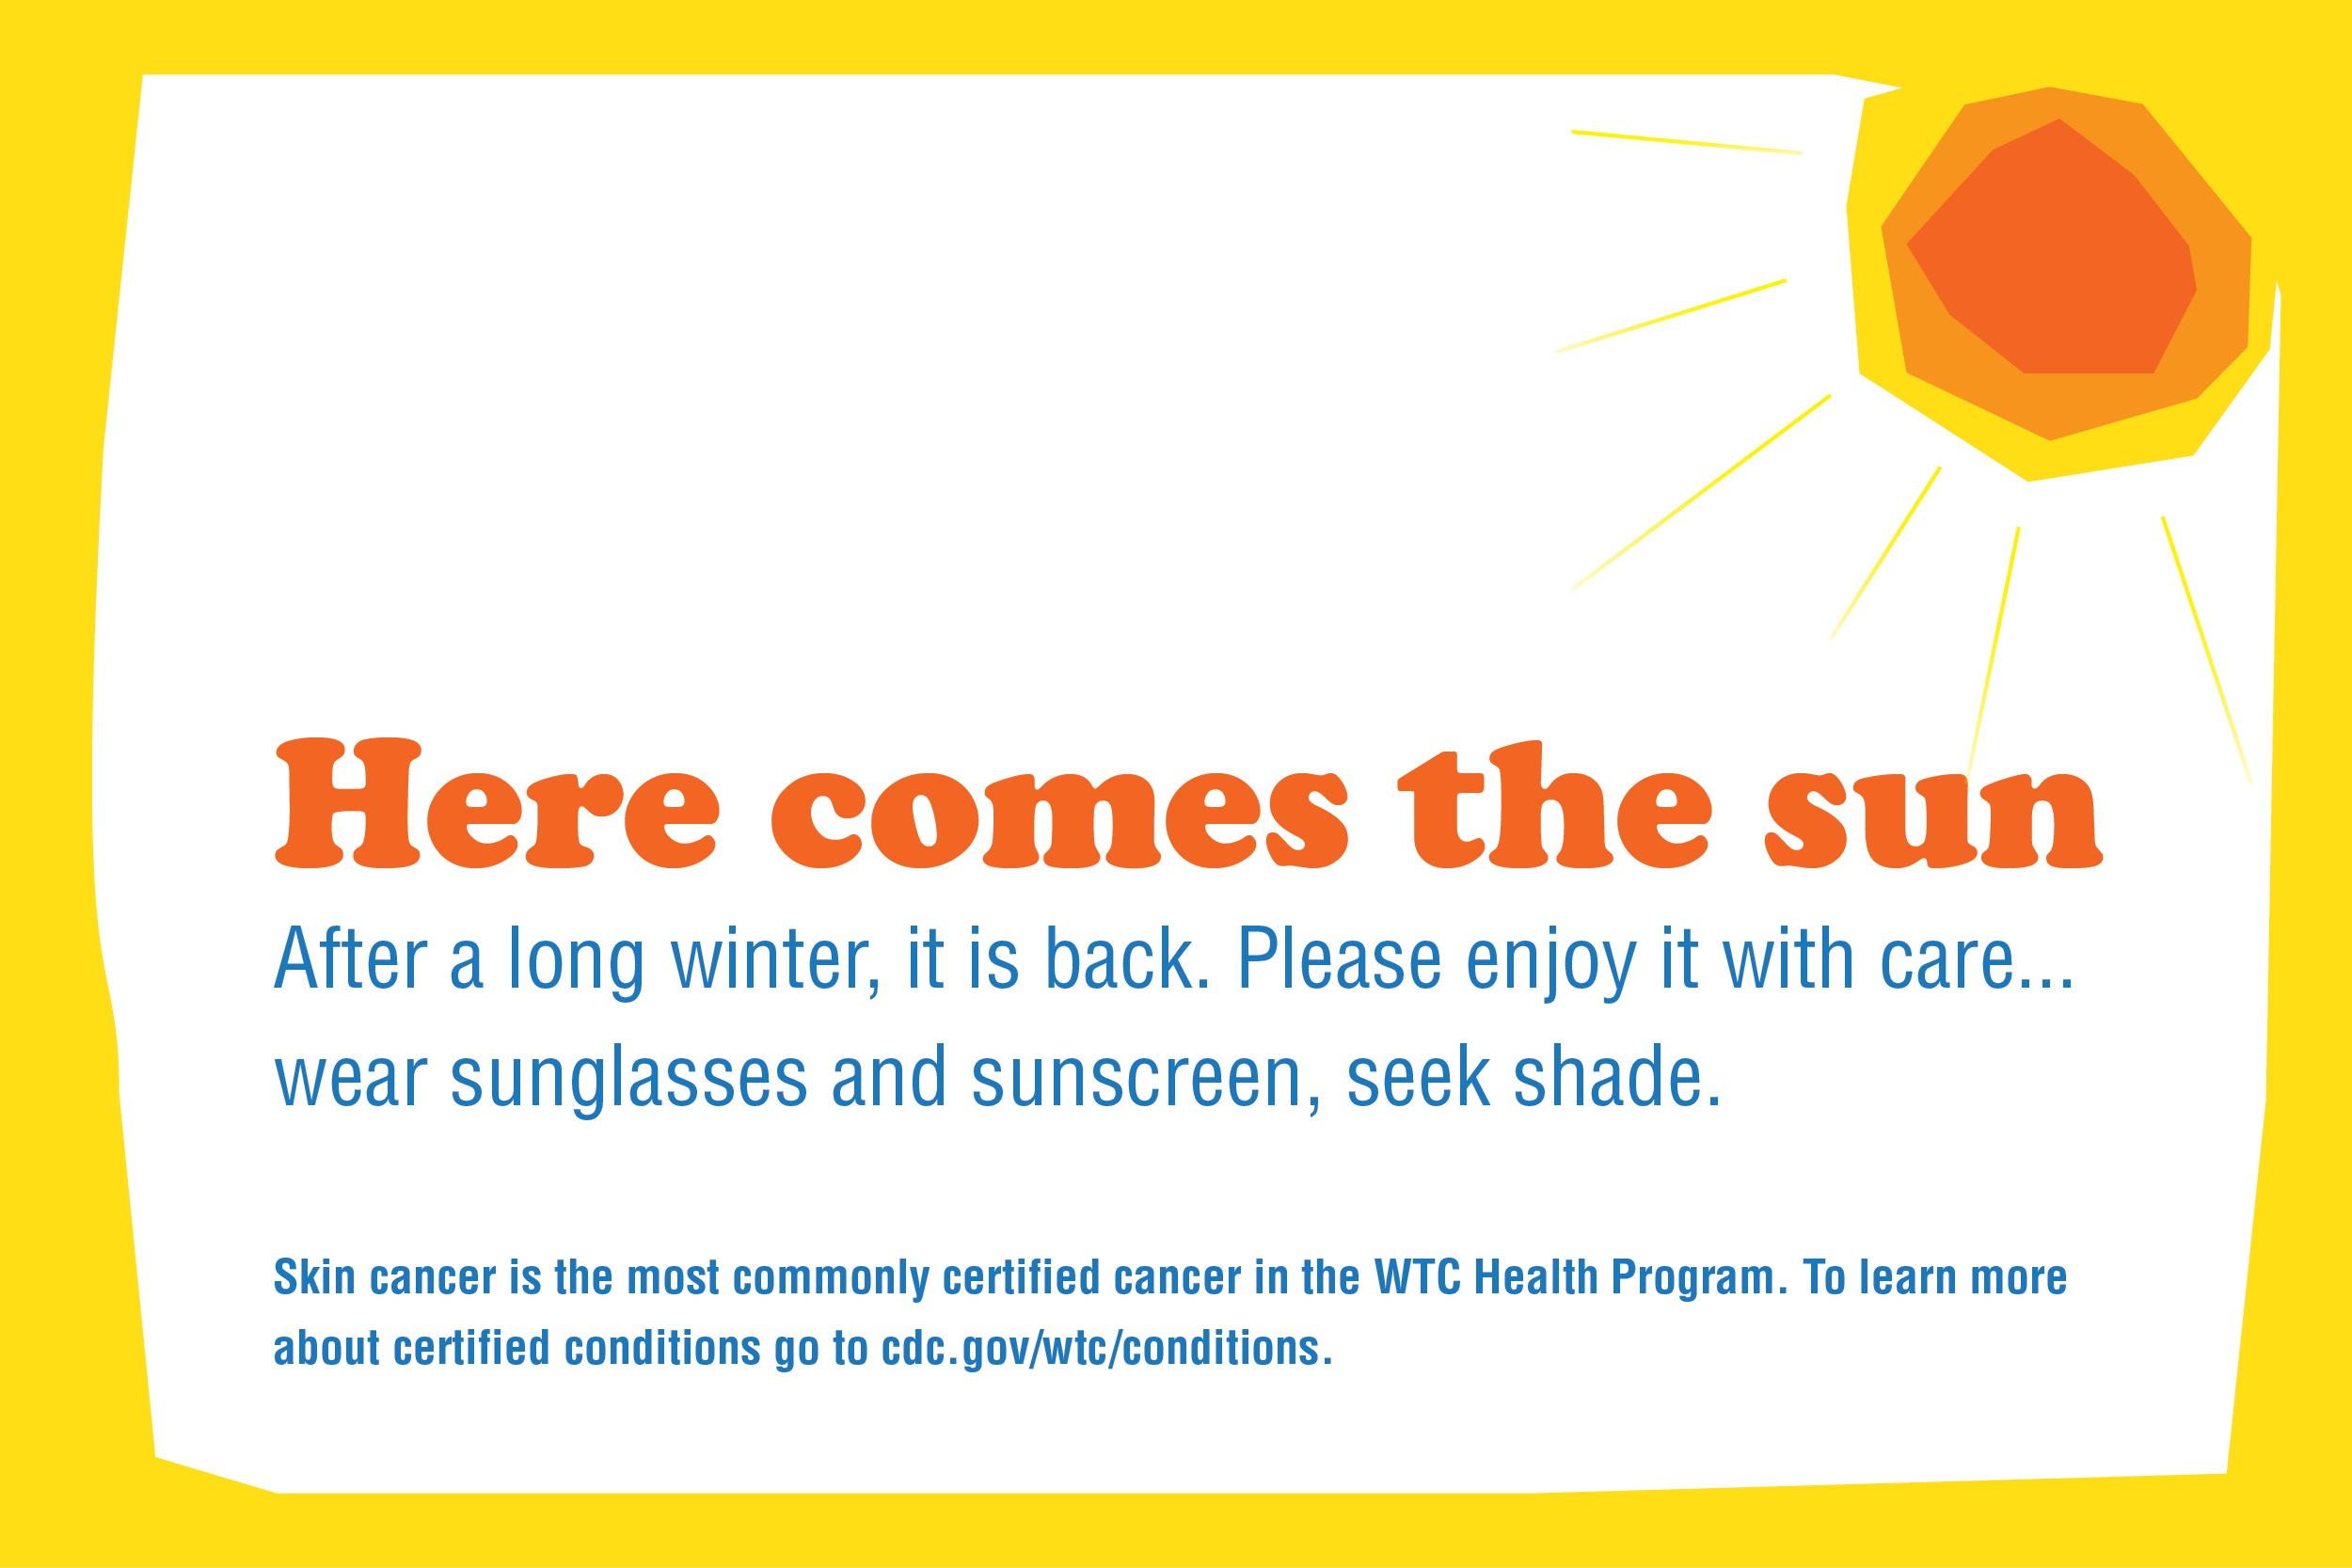 Skin cancer is the most commonly certified cancer in the WTC Health Program